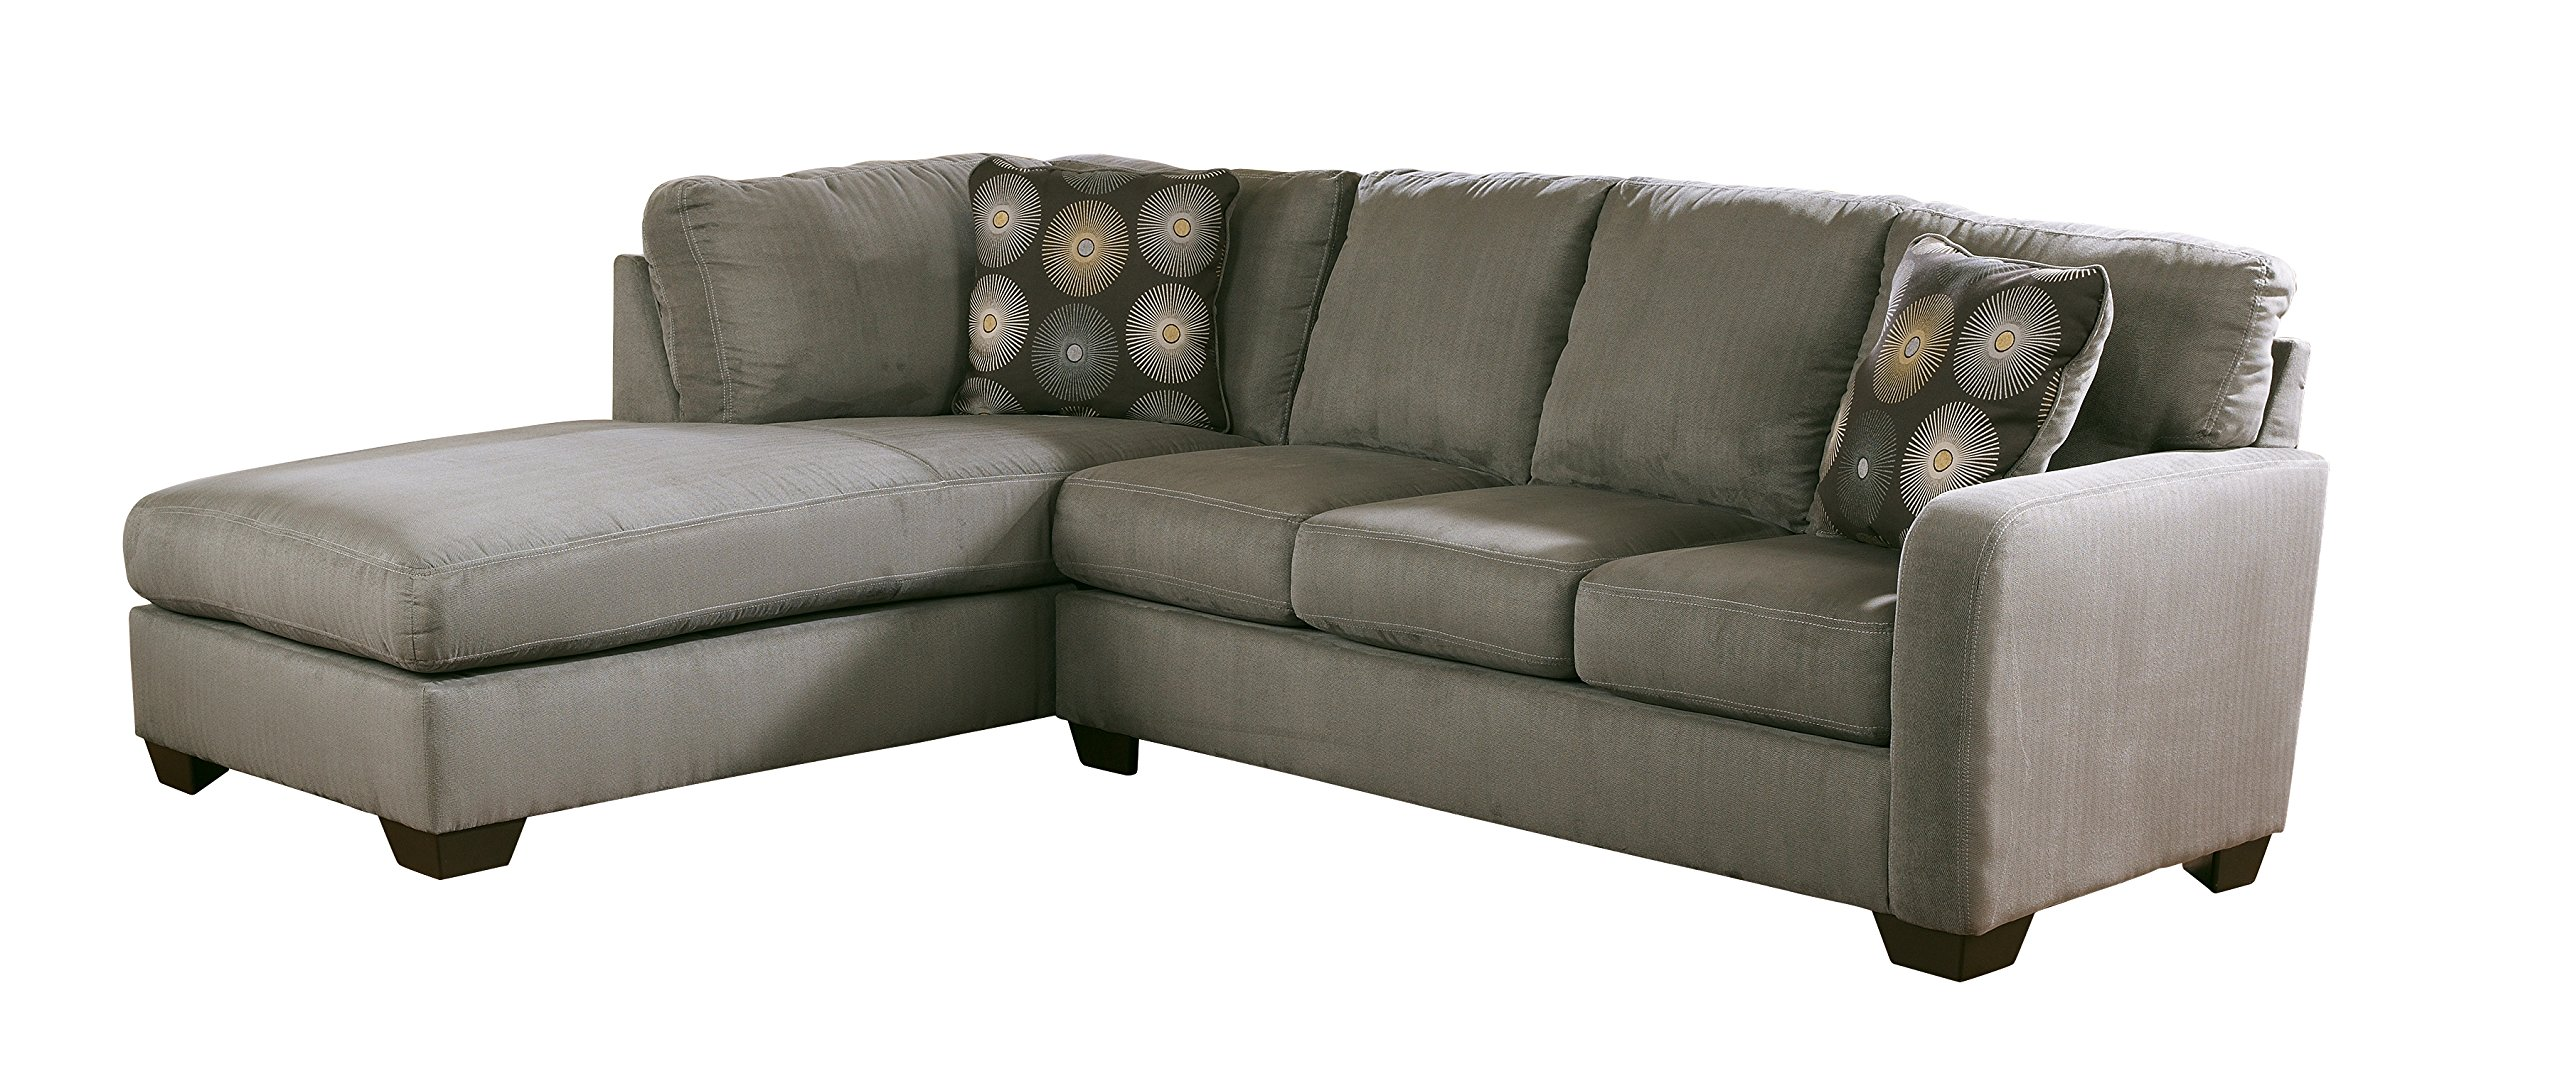 Ashley Furniture Signature Design - Zella 2-Piece Sectional - Right Arm Facing Sofa & Left Arm Facing Corner Chaise - Charcoal by Signature Design by Ashley